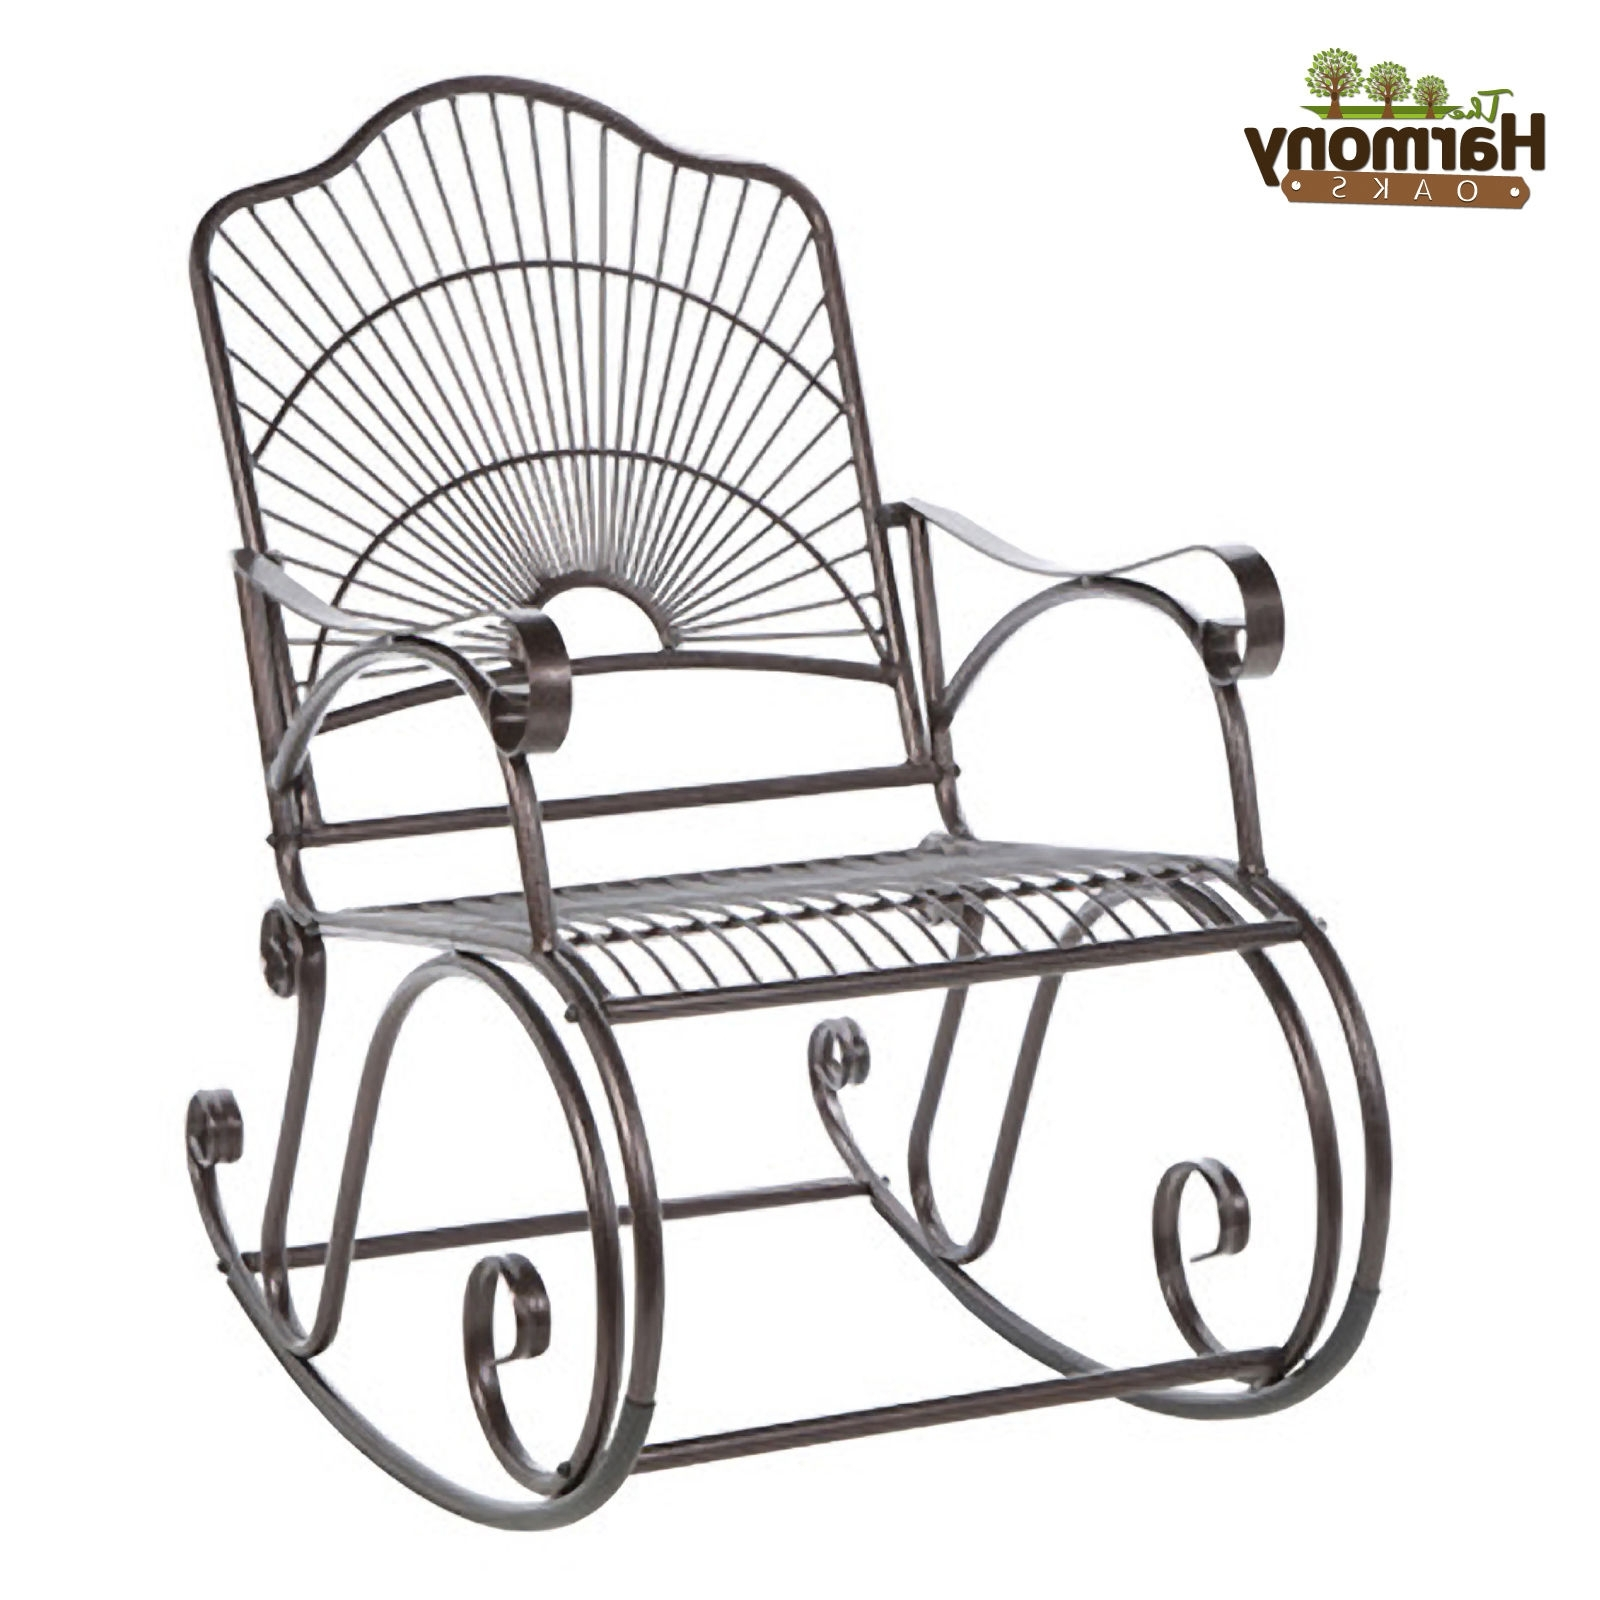 Rocker Wrought Iron Outdoor Patio Porch New Furniture Wrought Iron Within Widely Used Iron Rocking Patio Chairs (View 13 of 15)